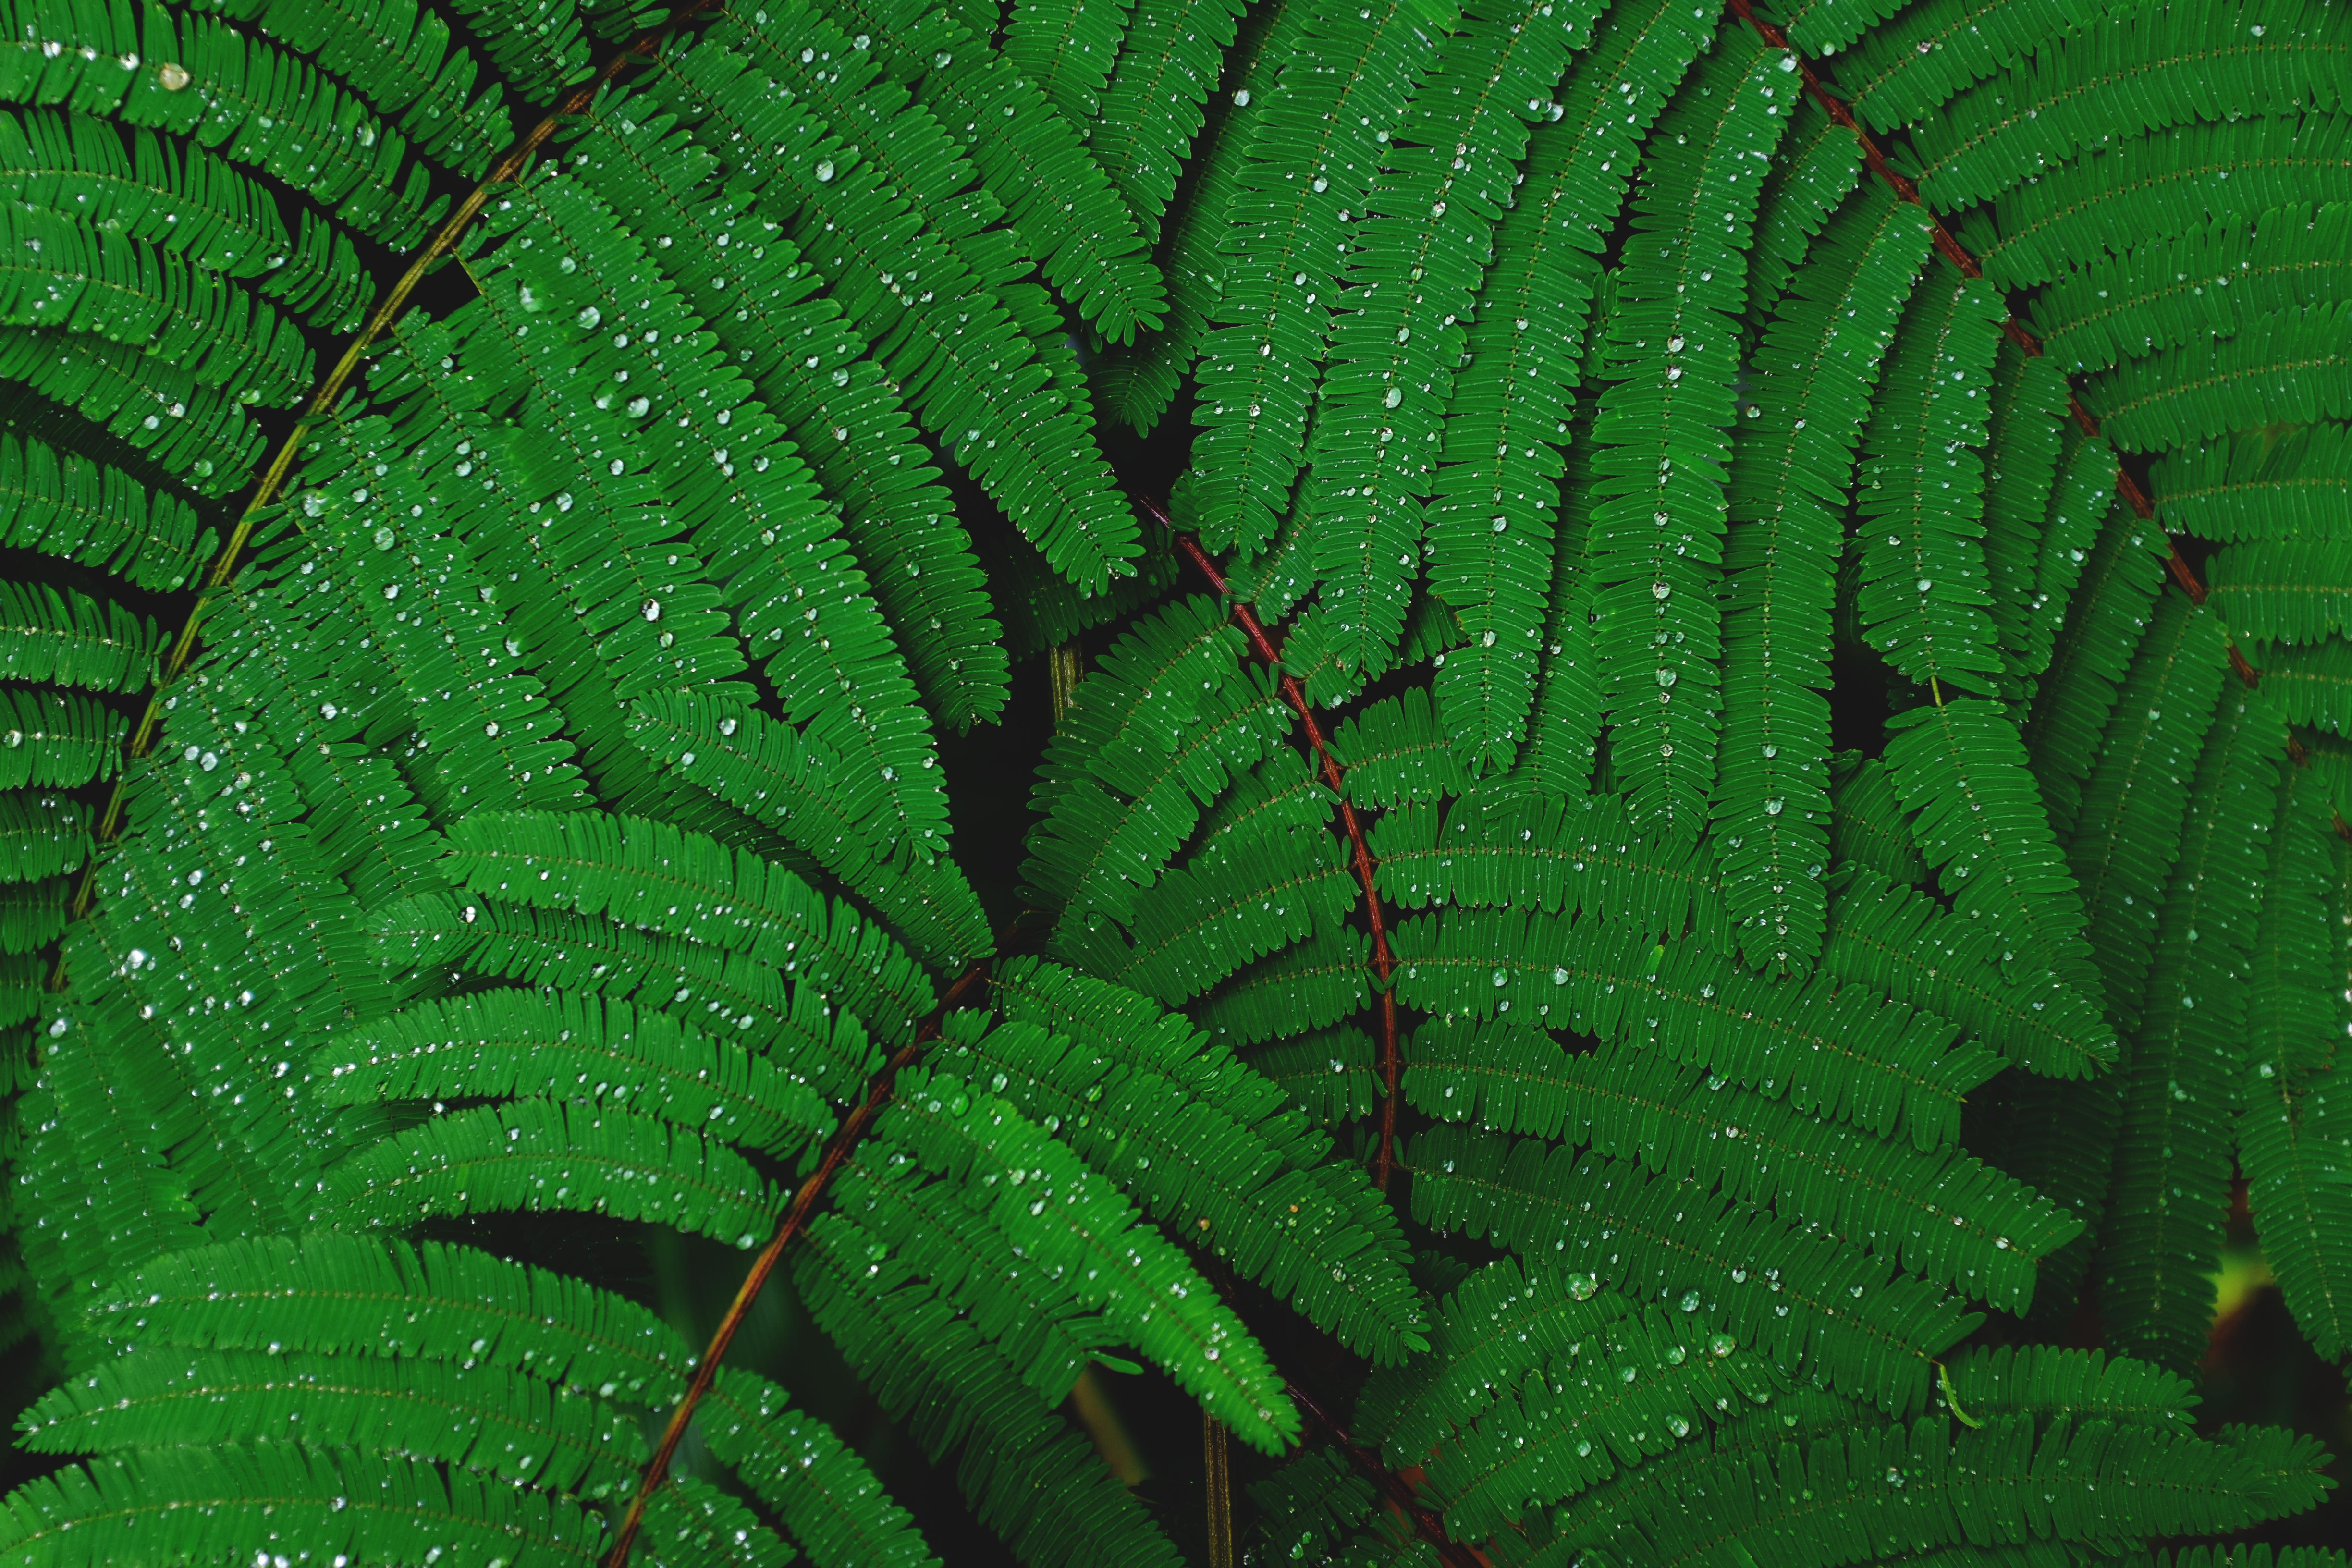 Fern 4k Ultra Hd Wallpaper Background Image 4896x3264